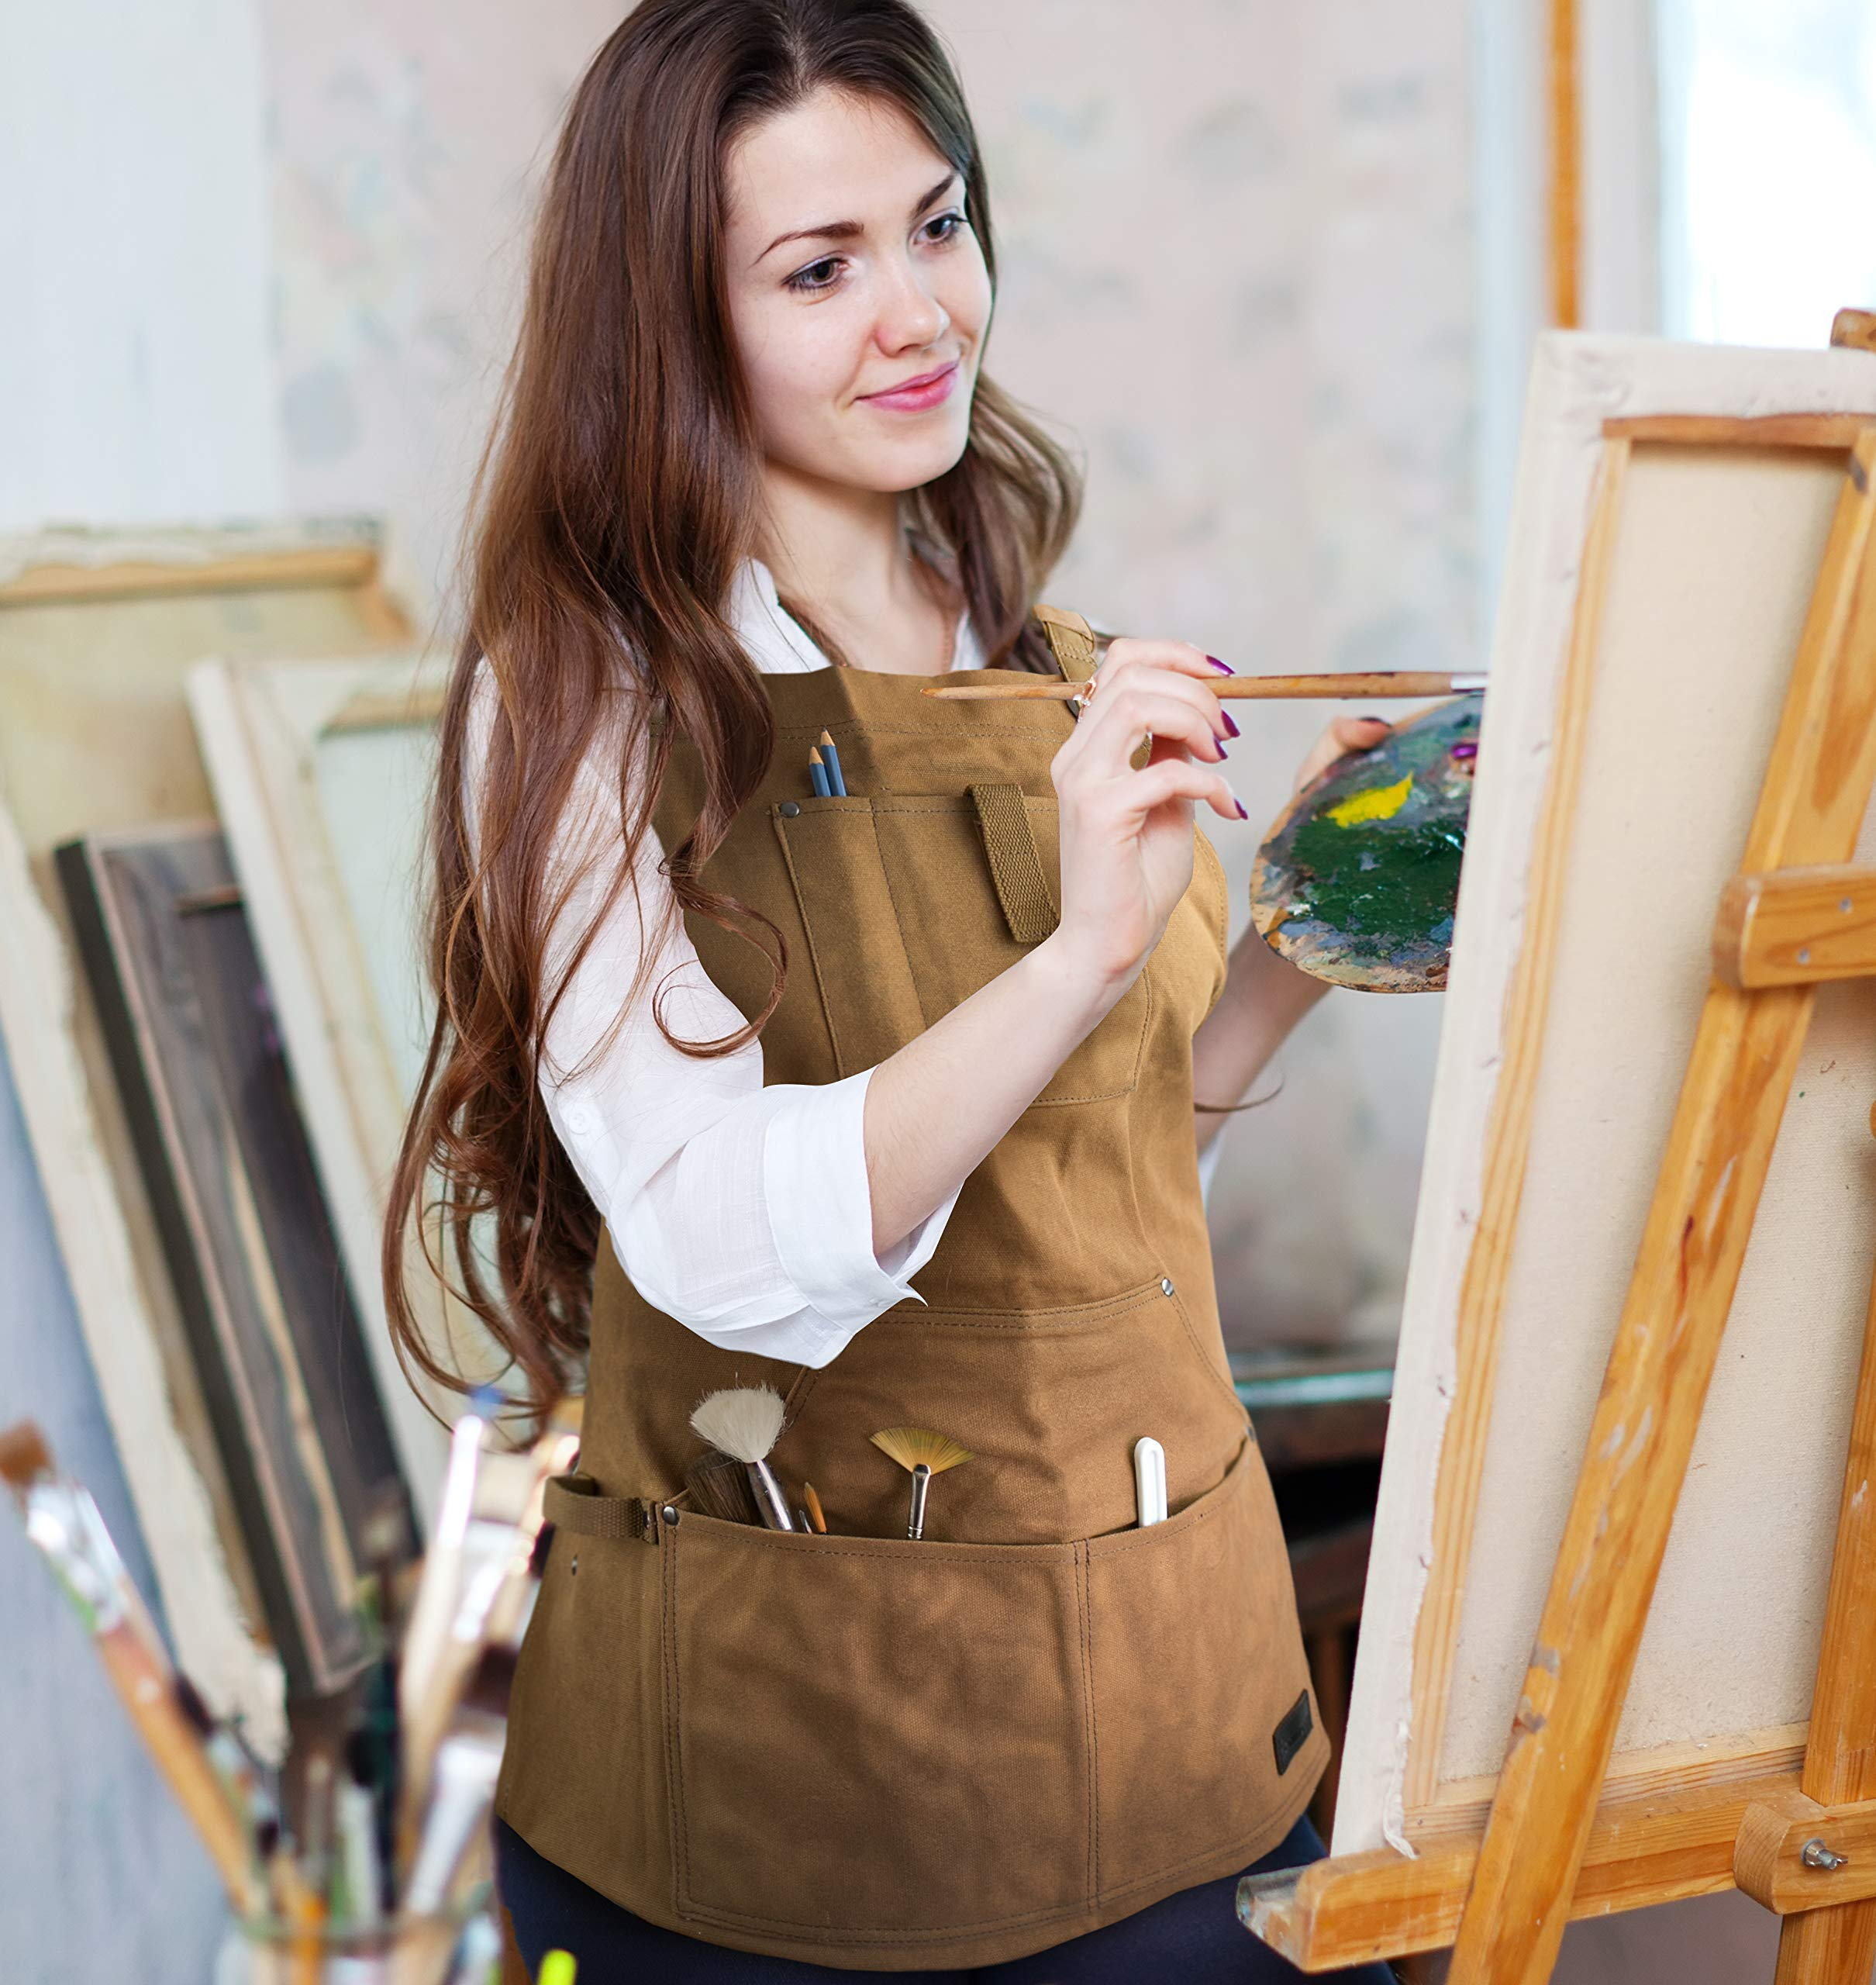 Waterproof Canvas Work Apron for Men and Women, Heavy-Duty Waxed for Durability and Safety - Brown by NomadFox (Image #8)